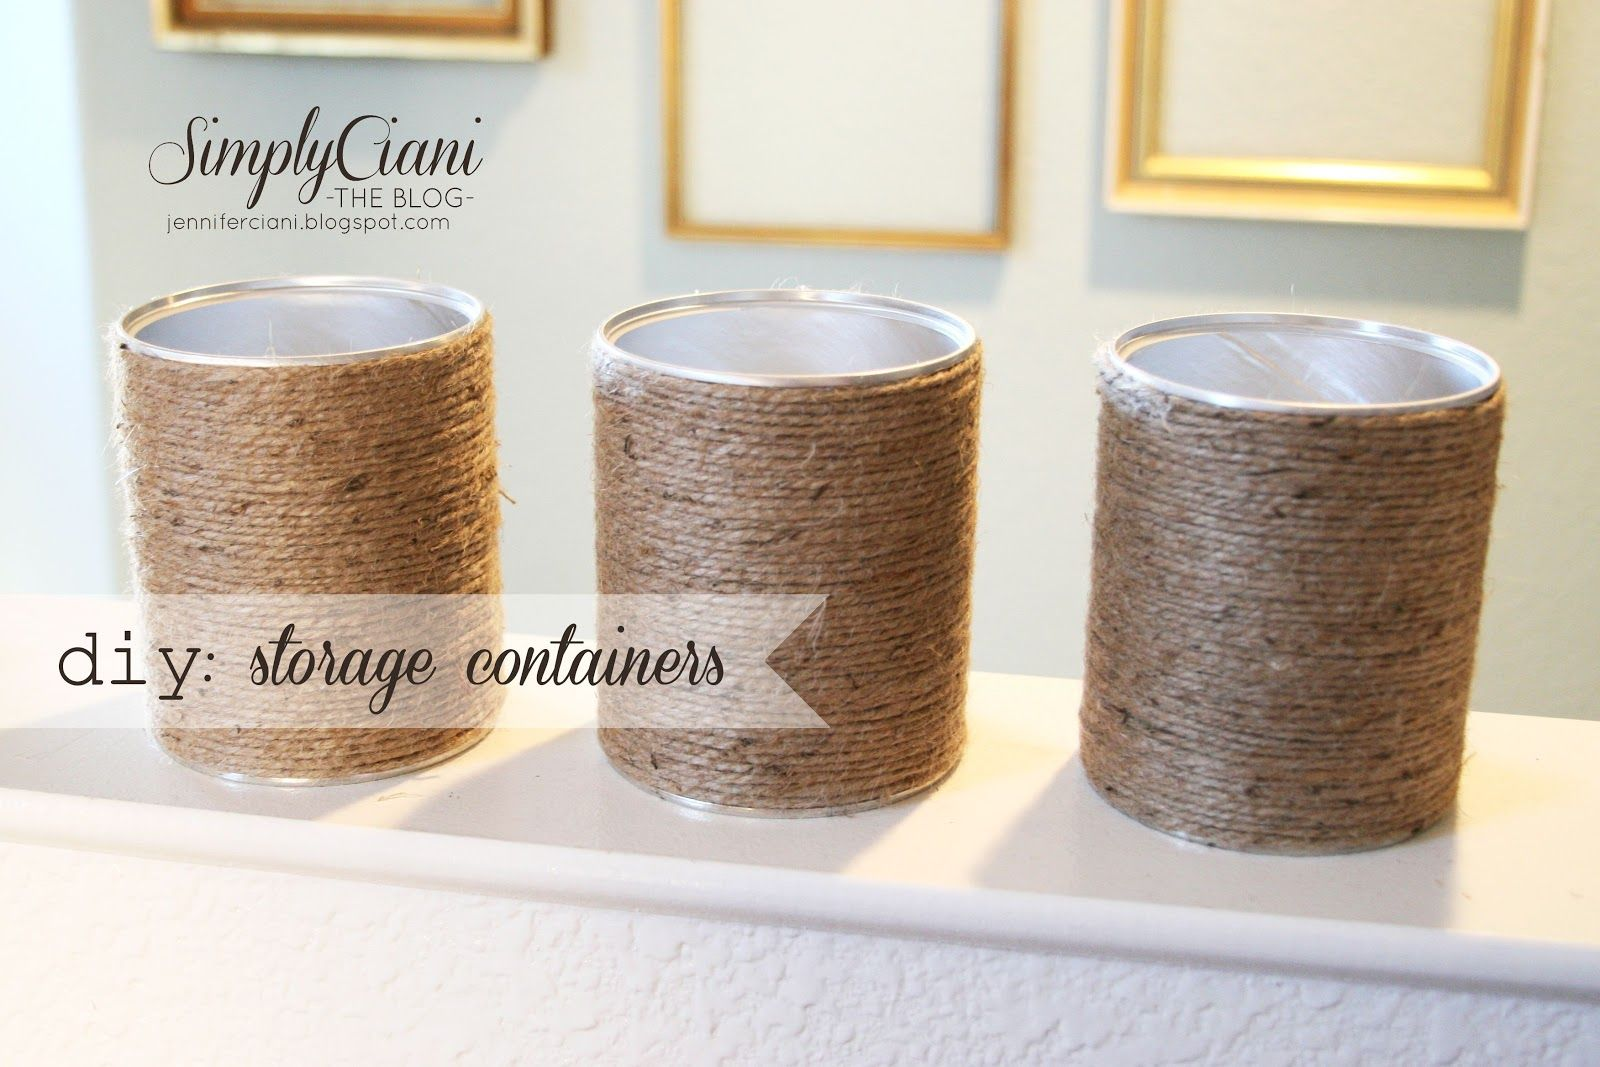 diy office storage ideas. Simply Ciani: DIY Office Organization With Baby Formula Cans, Covered In Jute Rope Diy Storage Ideas